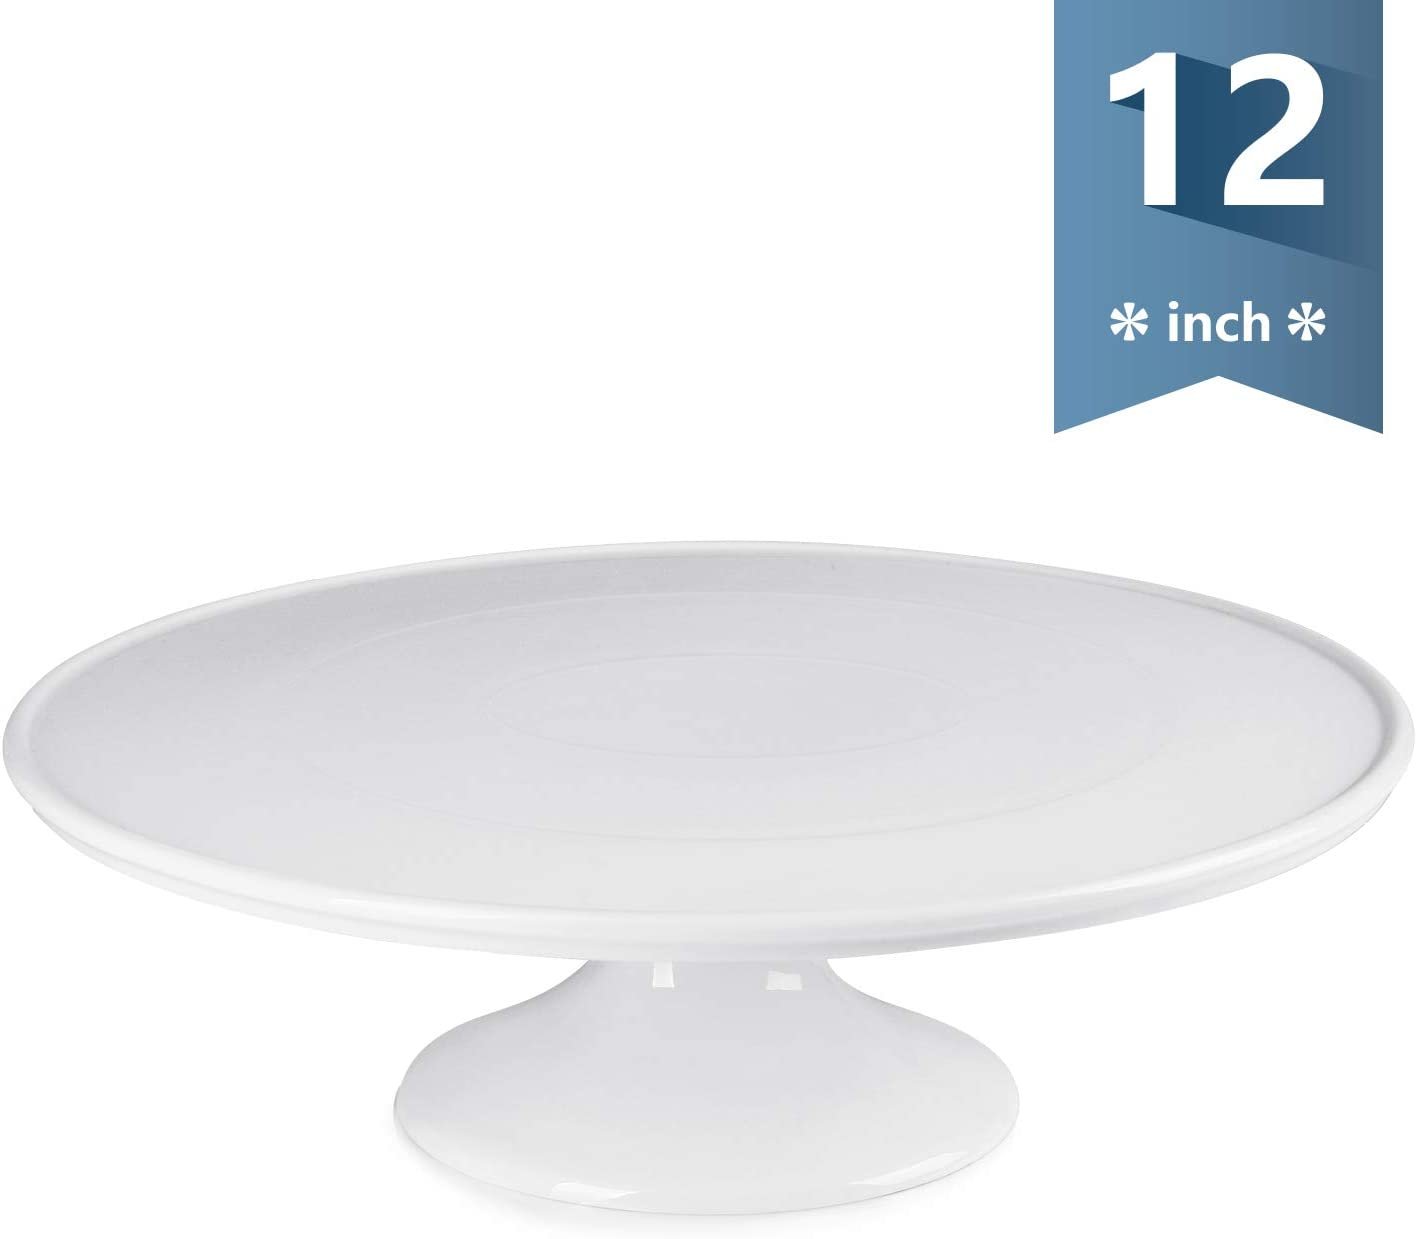 Sweese 709.101 12-Inch Porcelain Cake Stand, Round Dessert Stand, White Cupcake Stand for Parties